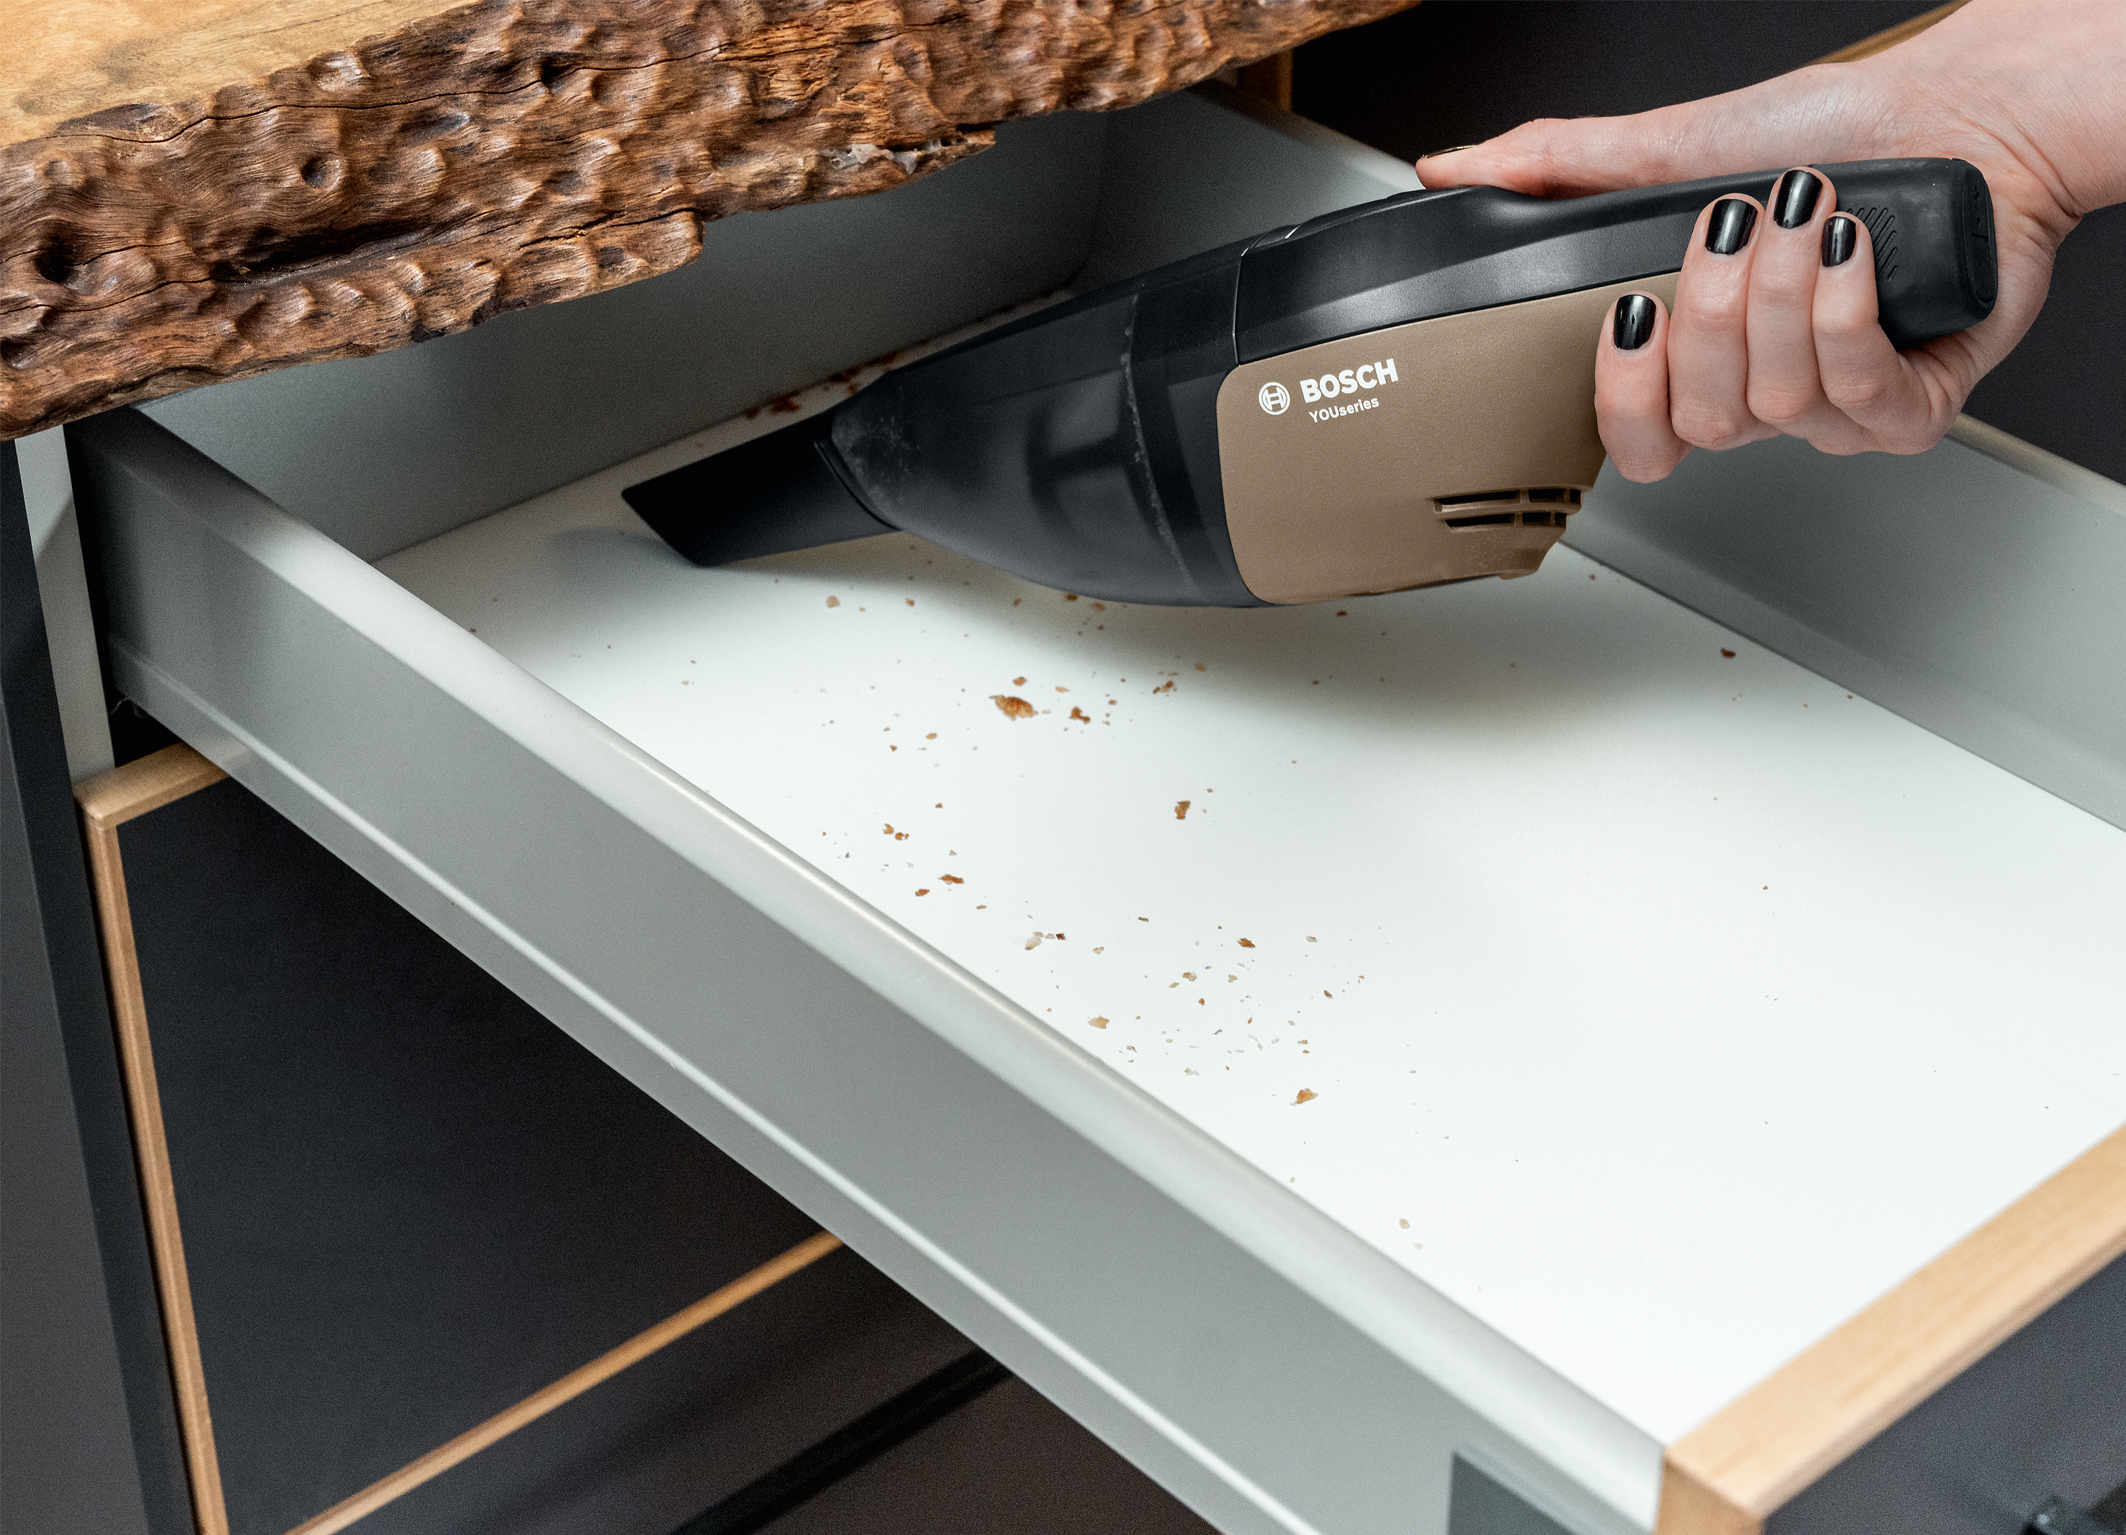 A universal everyday helper – vacuuming with style: The cordless hand-held vacuum cleaner from the YouSeries